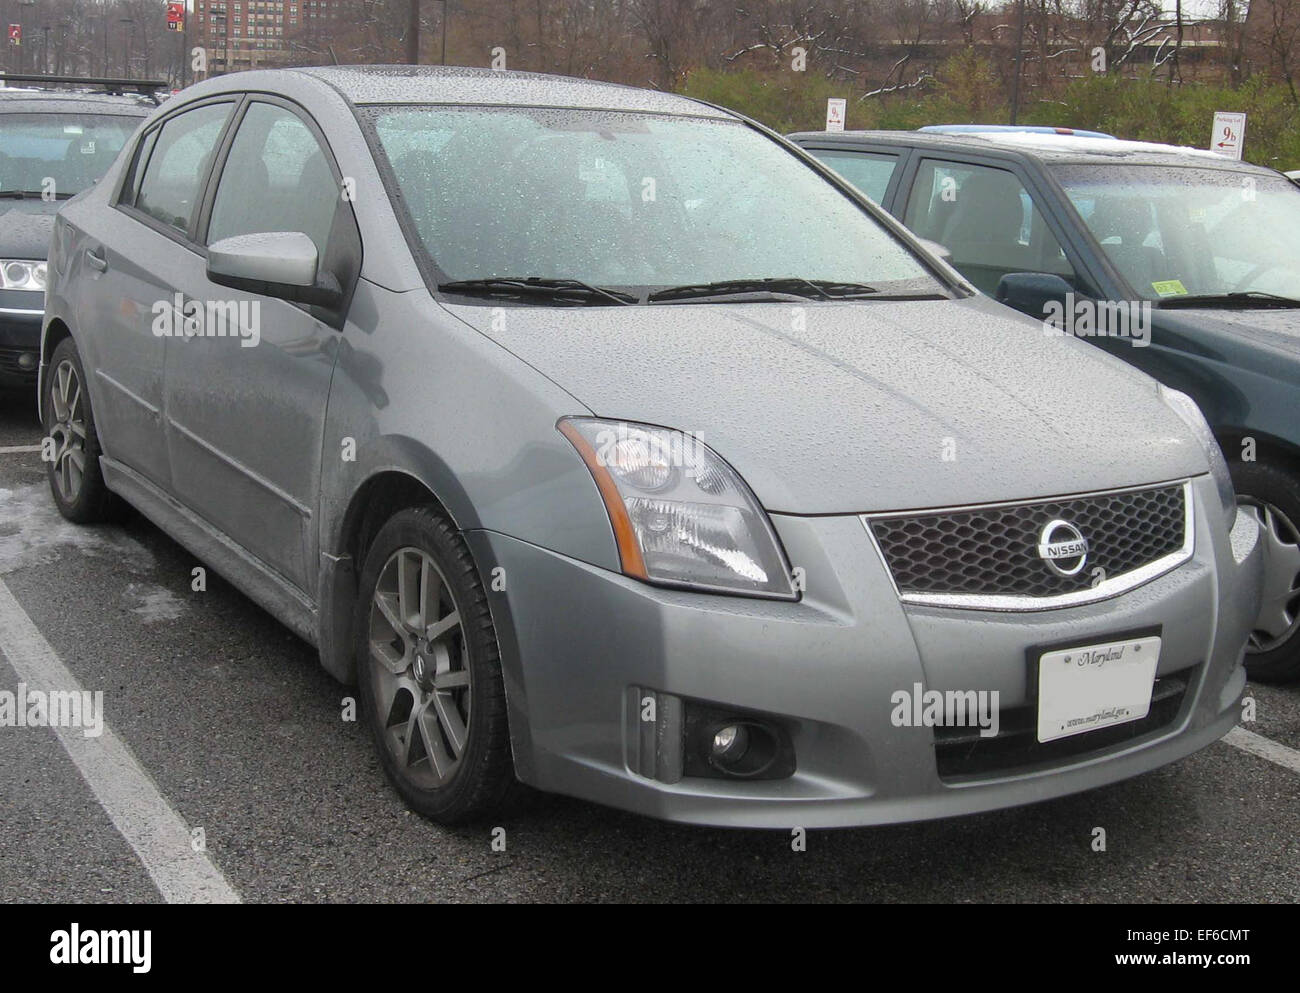 nissan sentra high resolution stock photography and images alamy https www alamy com stock photo 2008 nissan sentra se r specv 78203016 html